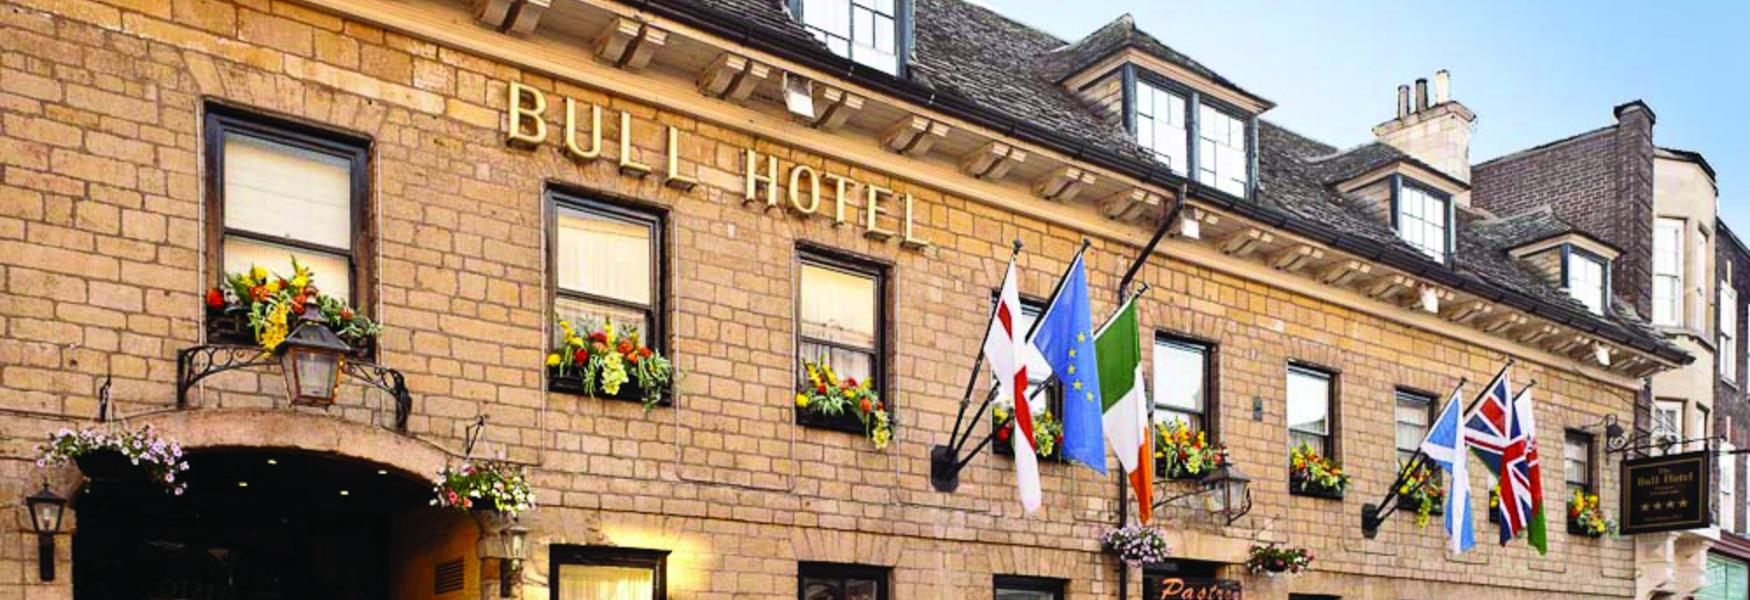 The Bull Hotel Front Entrance